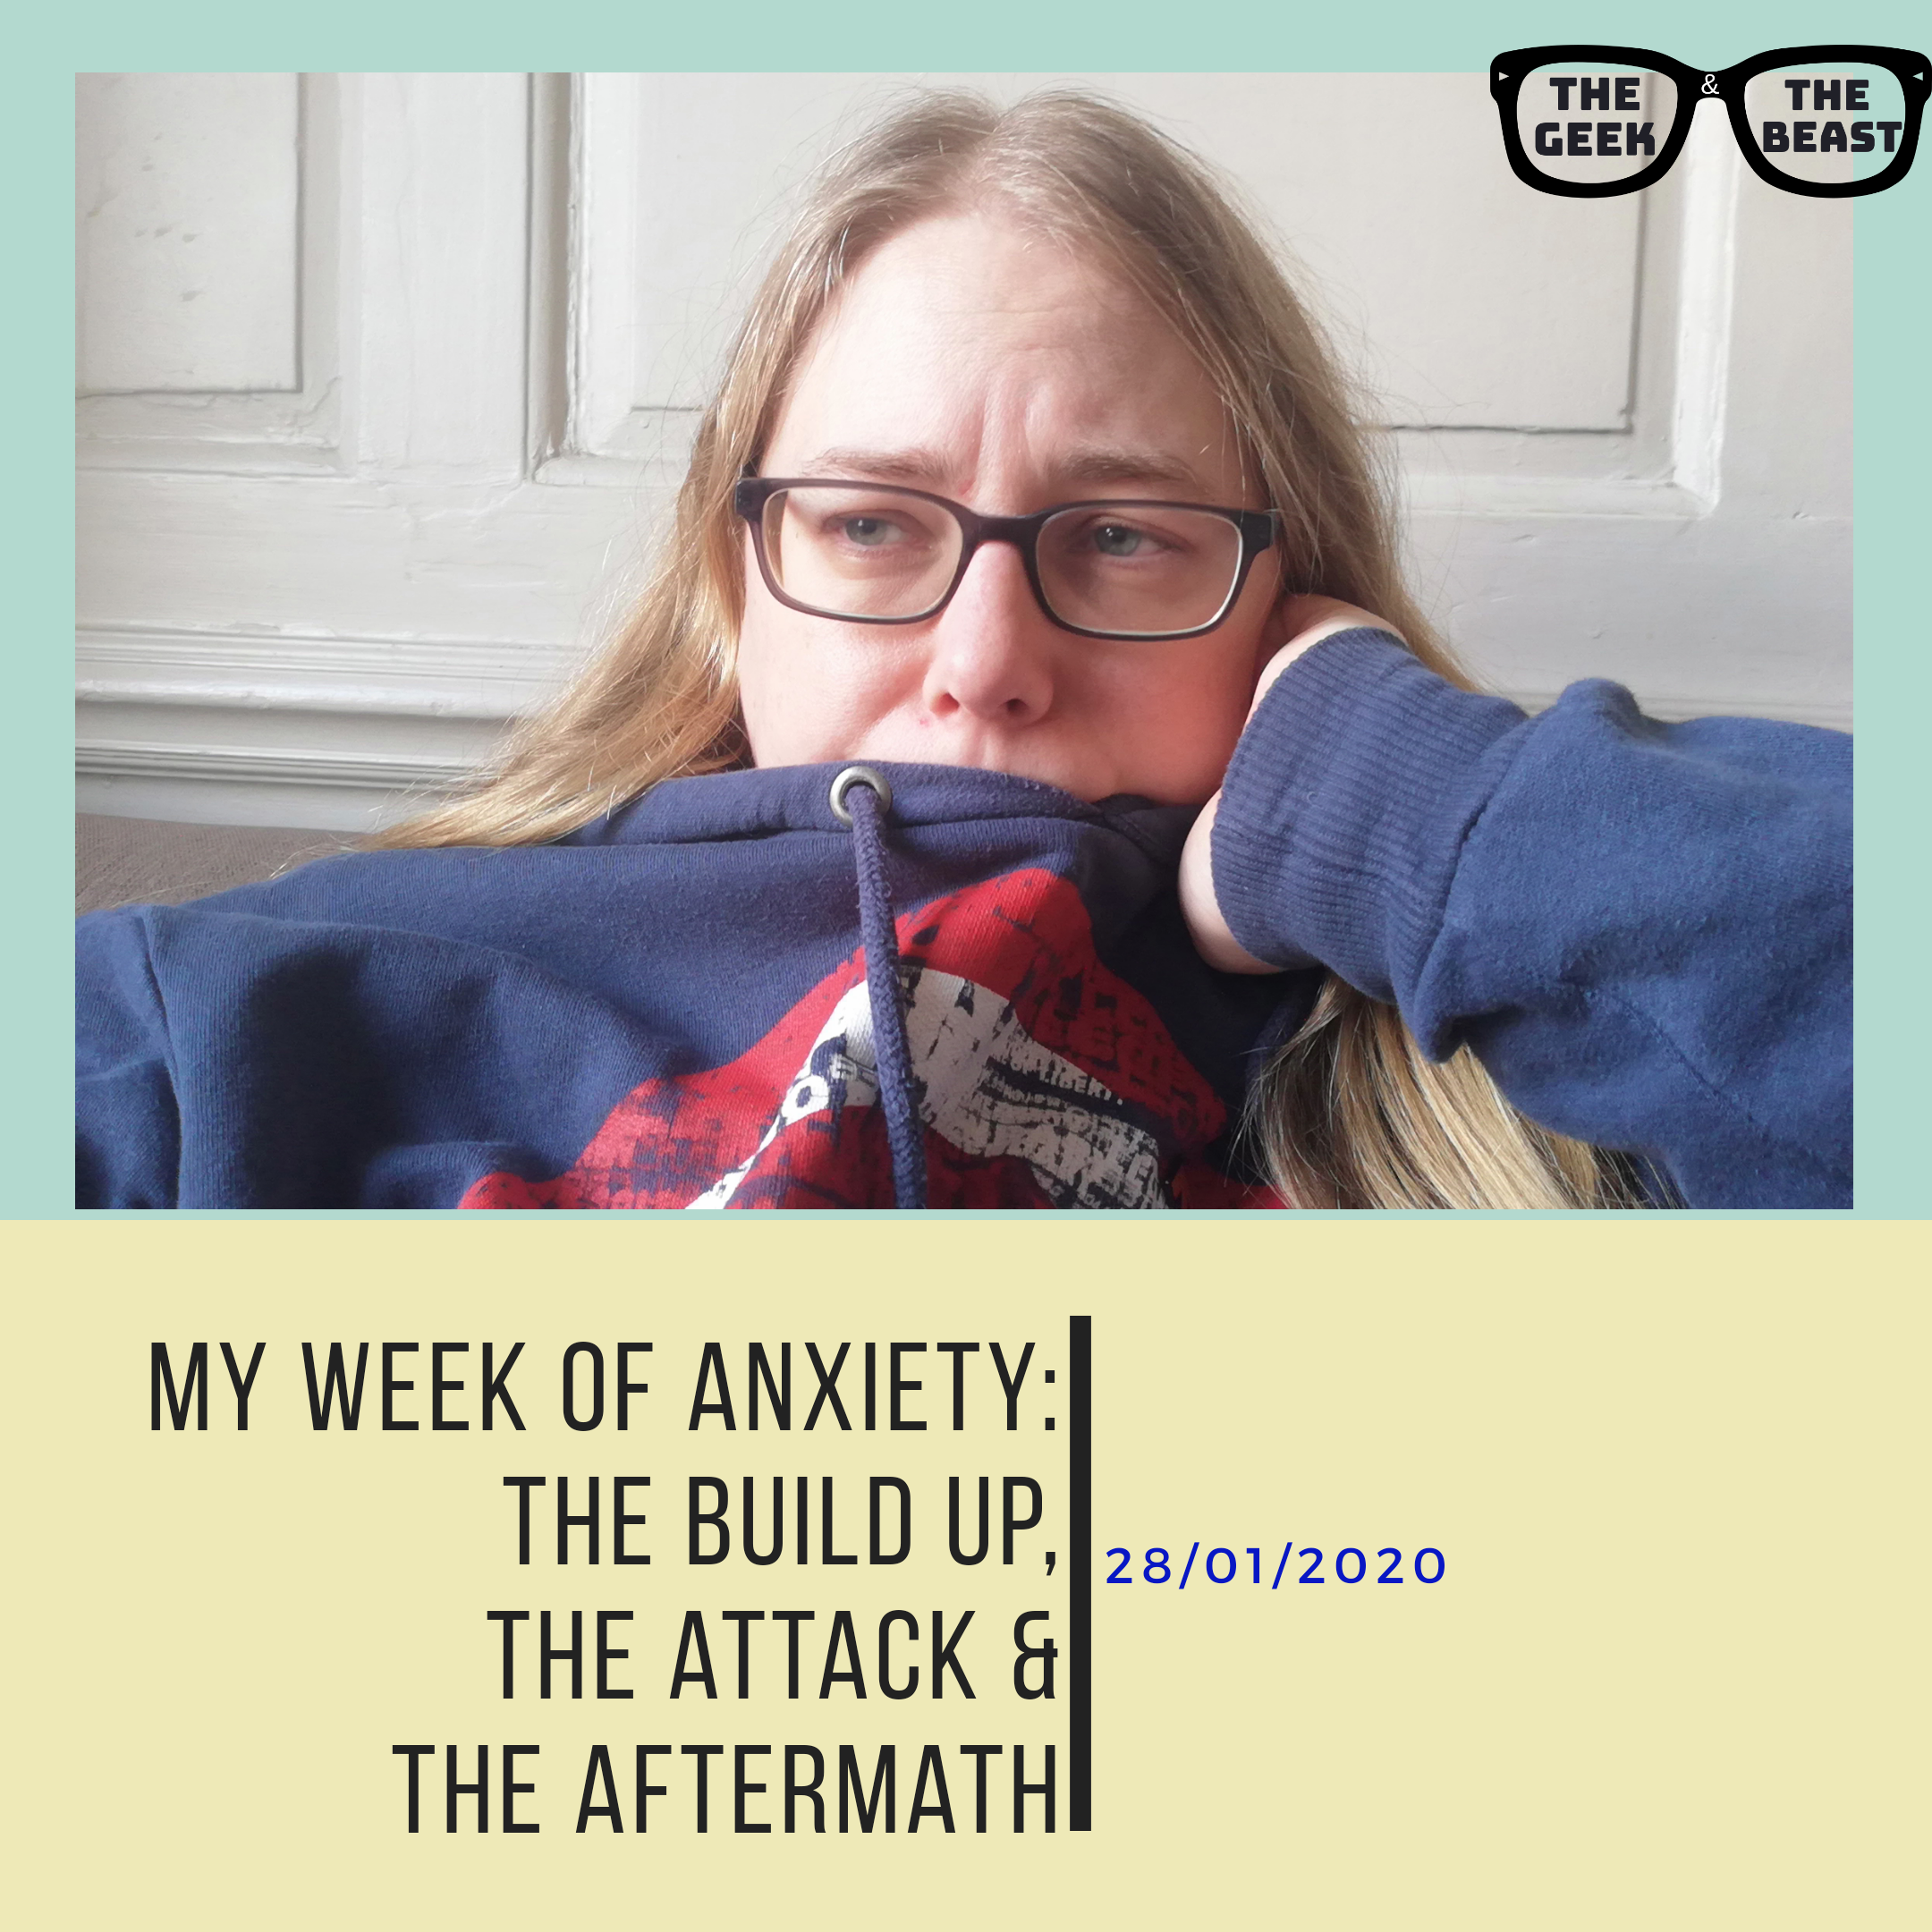 My week of anxiety blog post title and an image of myself